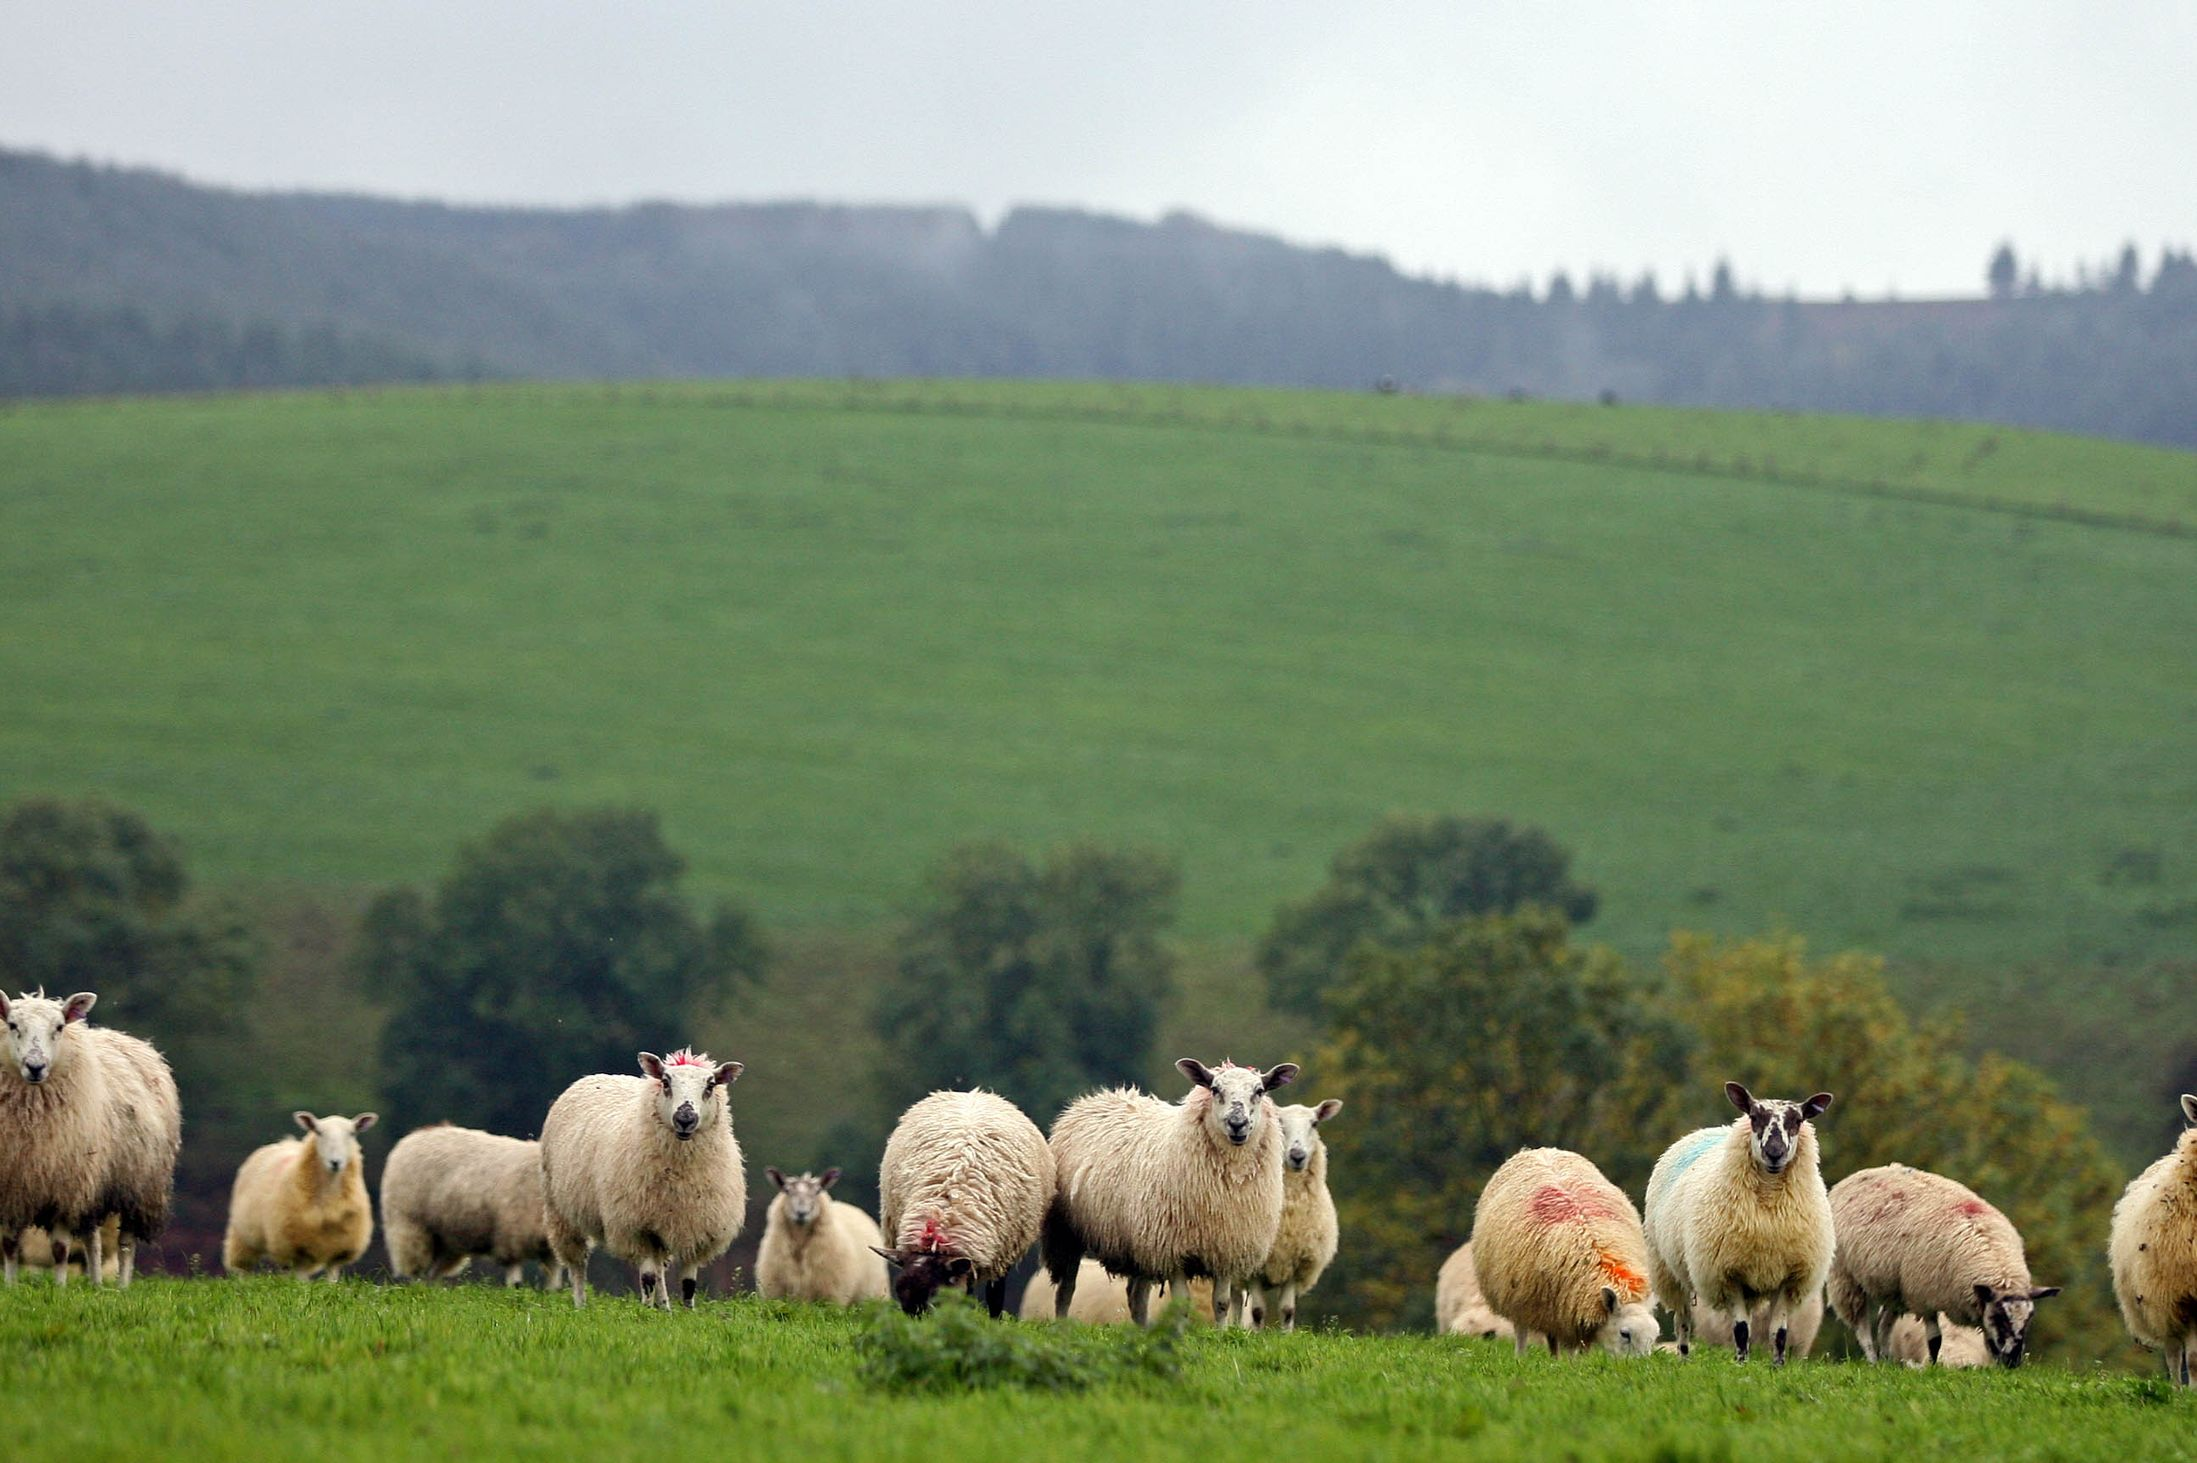 90% of Welsh farmers to receive Basic Payment Scheme payments on first day  - FarmingUK News